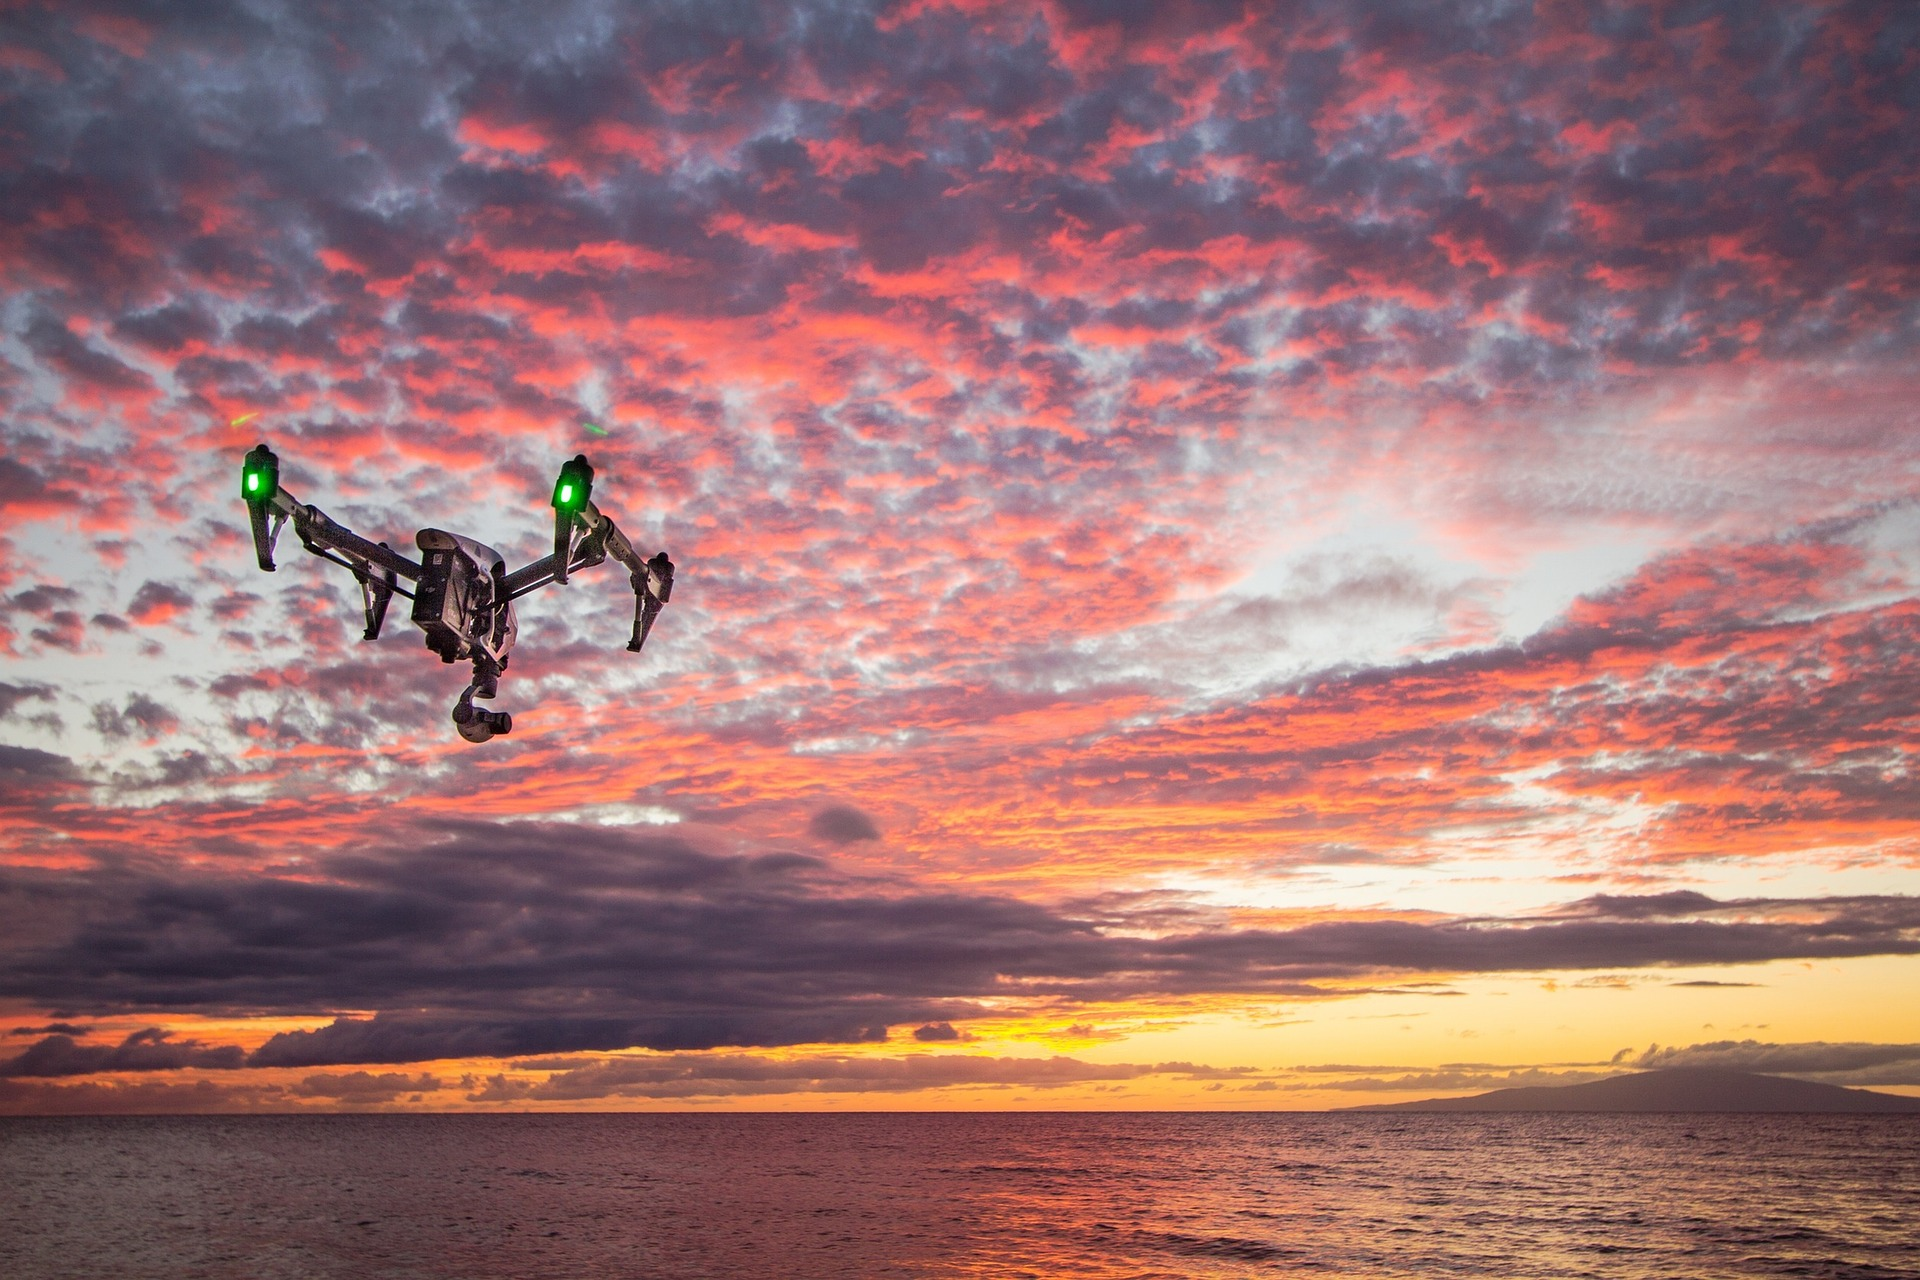 teal drone drone flying in red pink sky